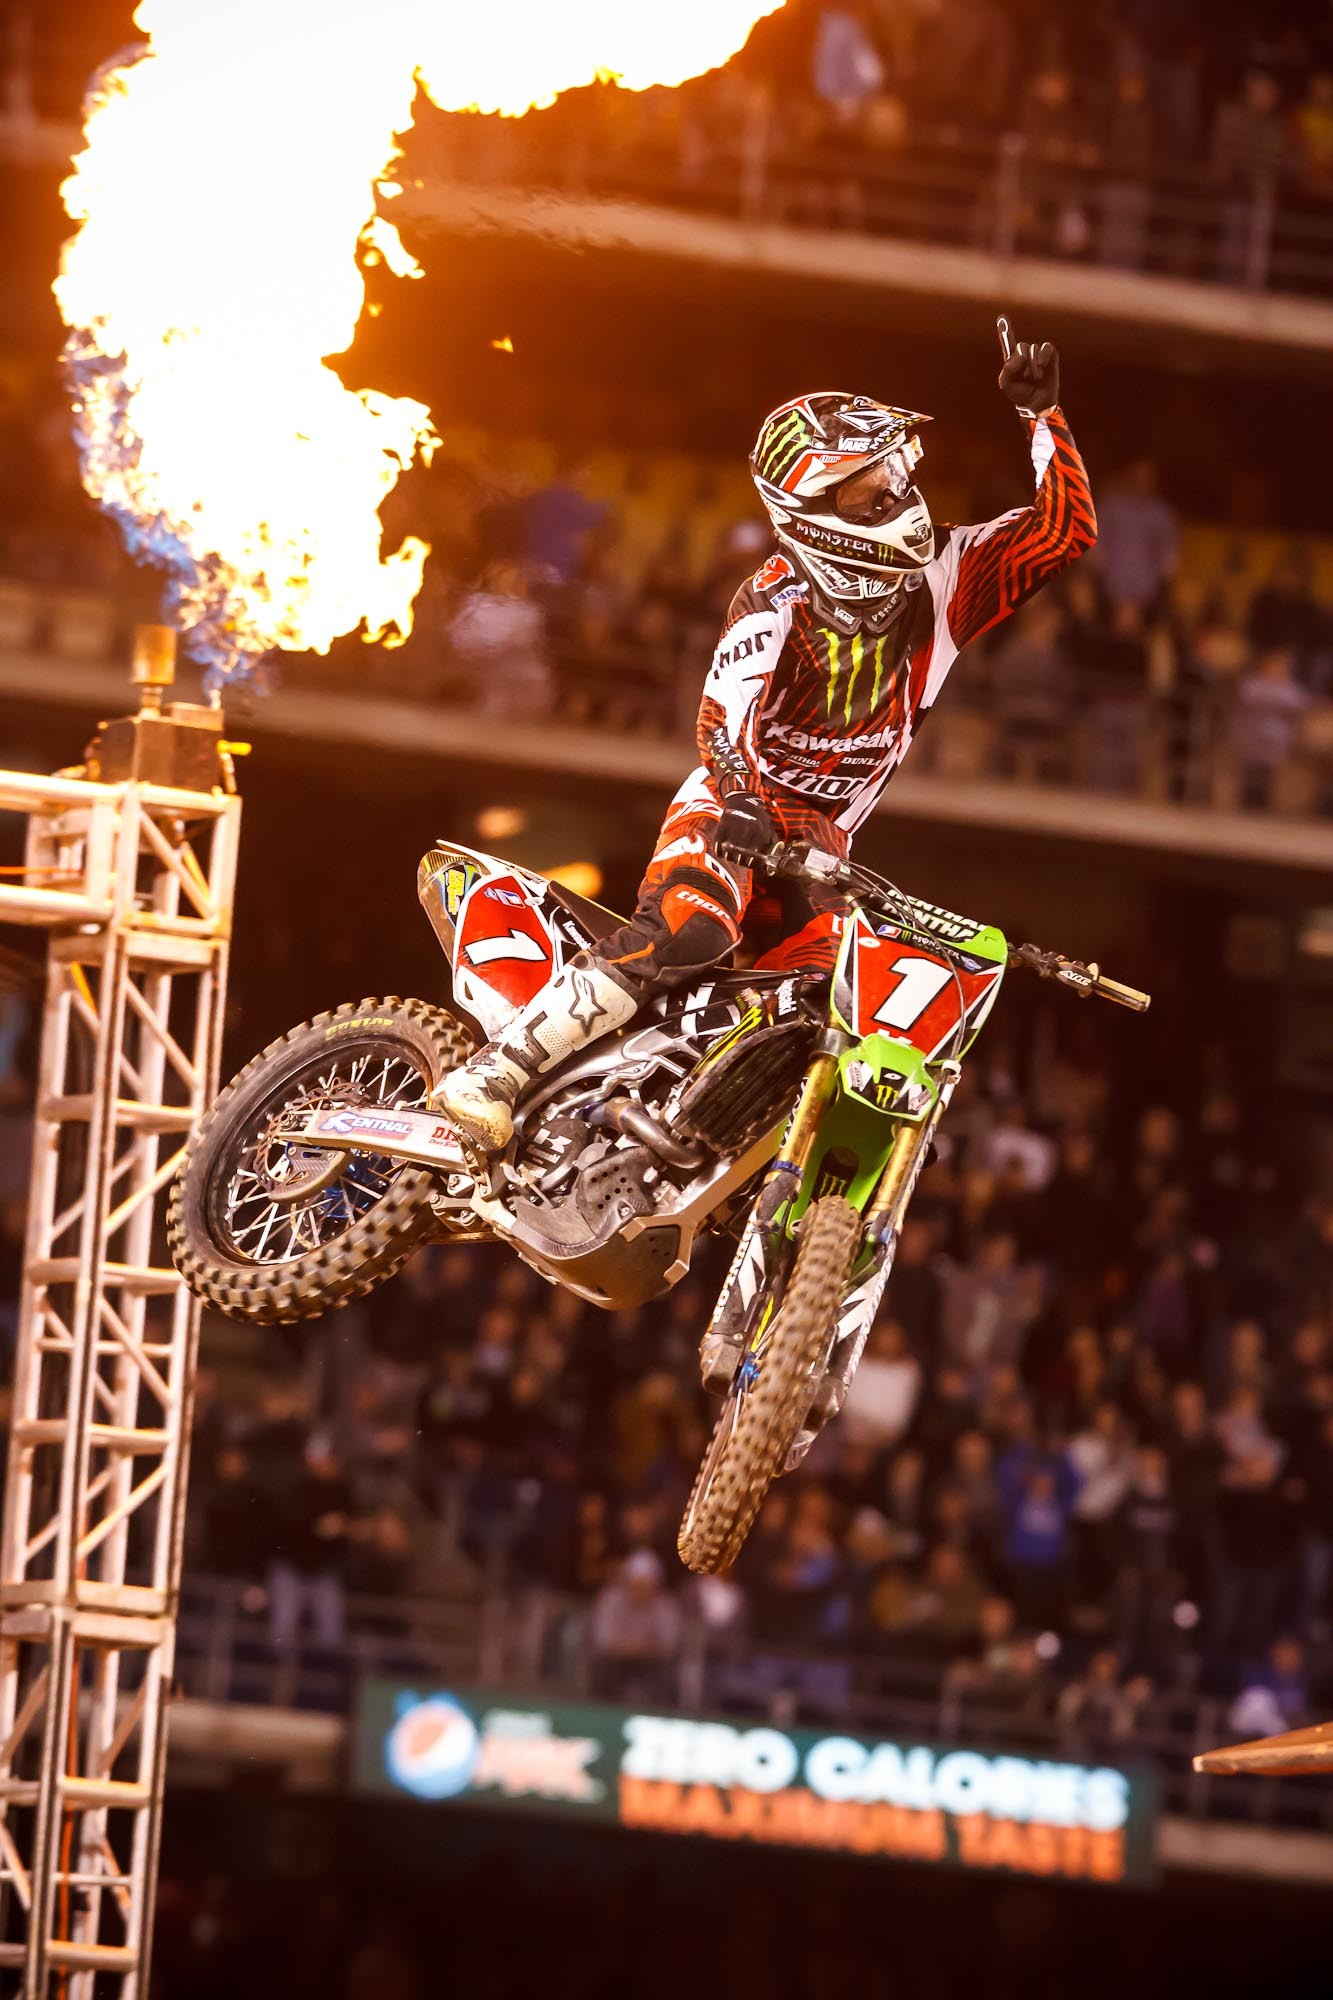 Supercross Wallpapers 91 Images